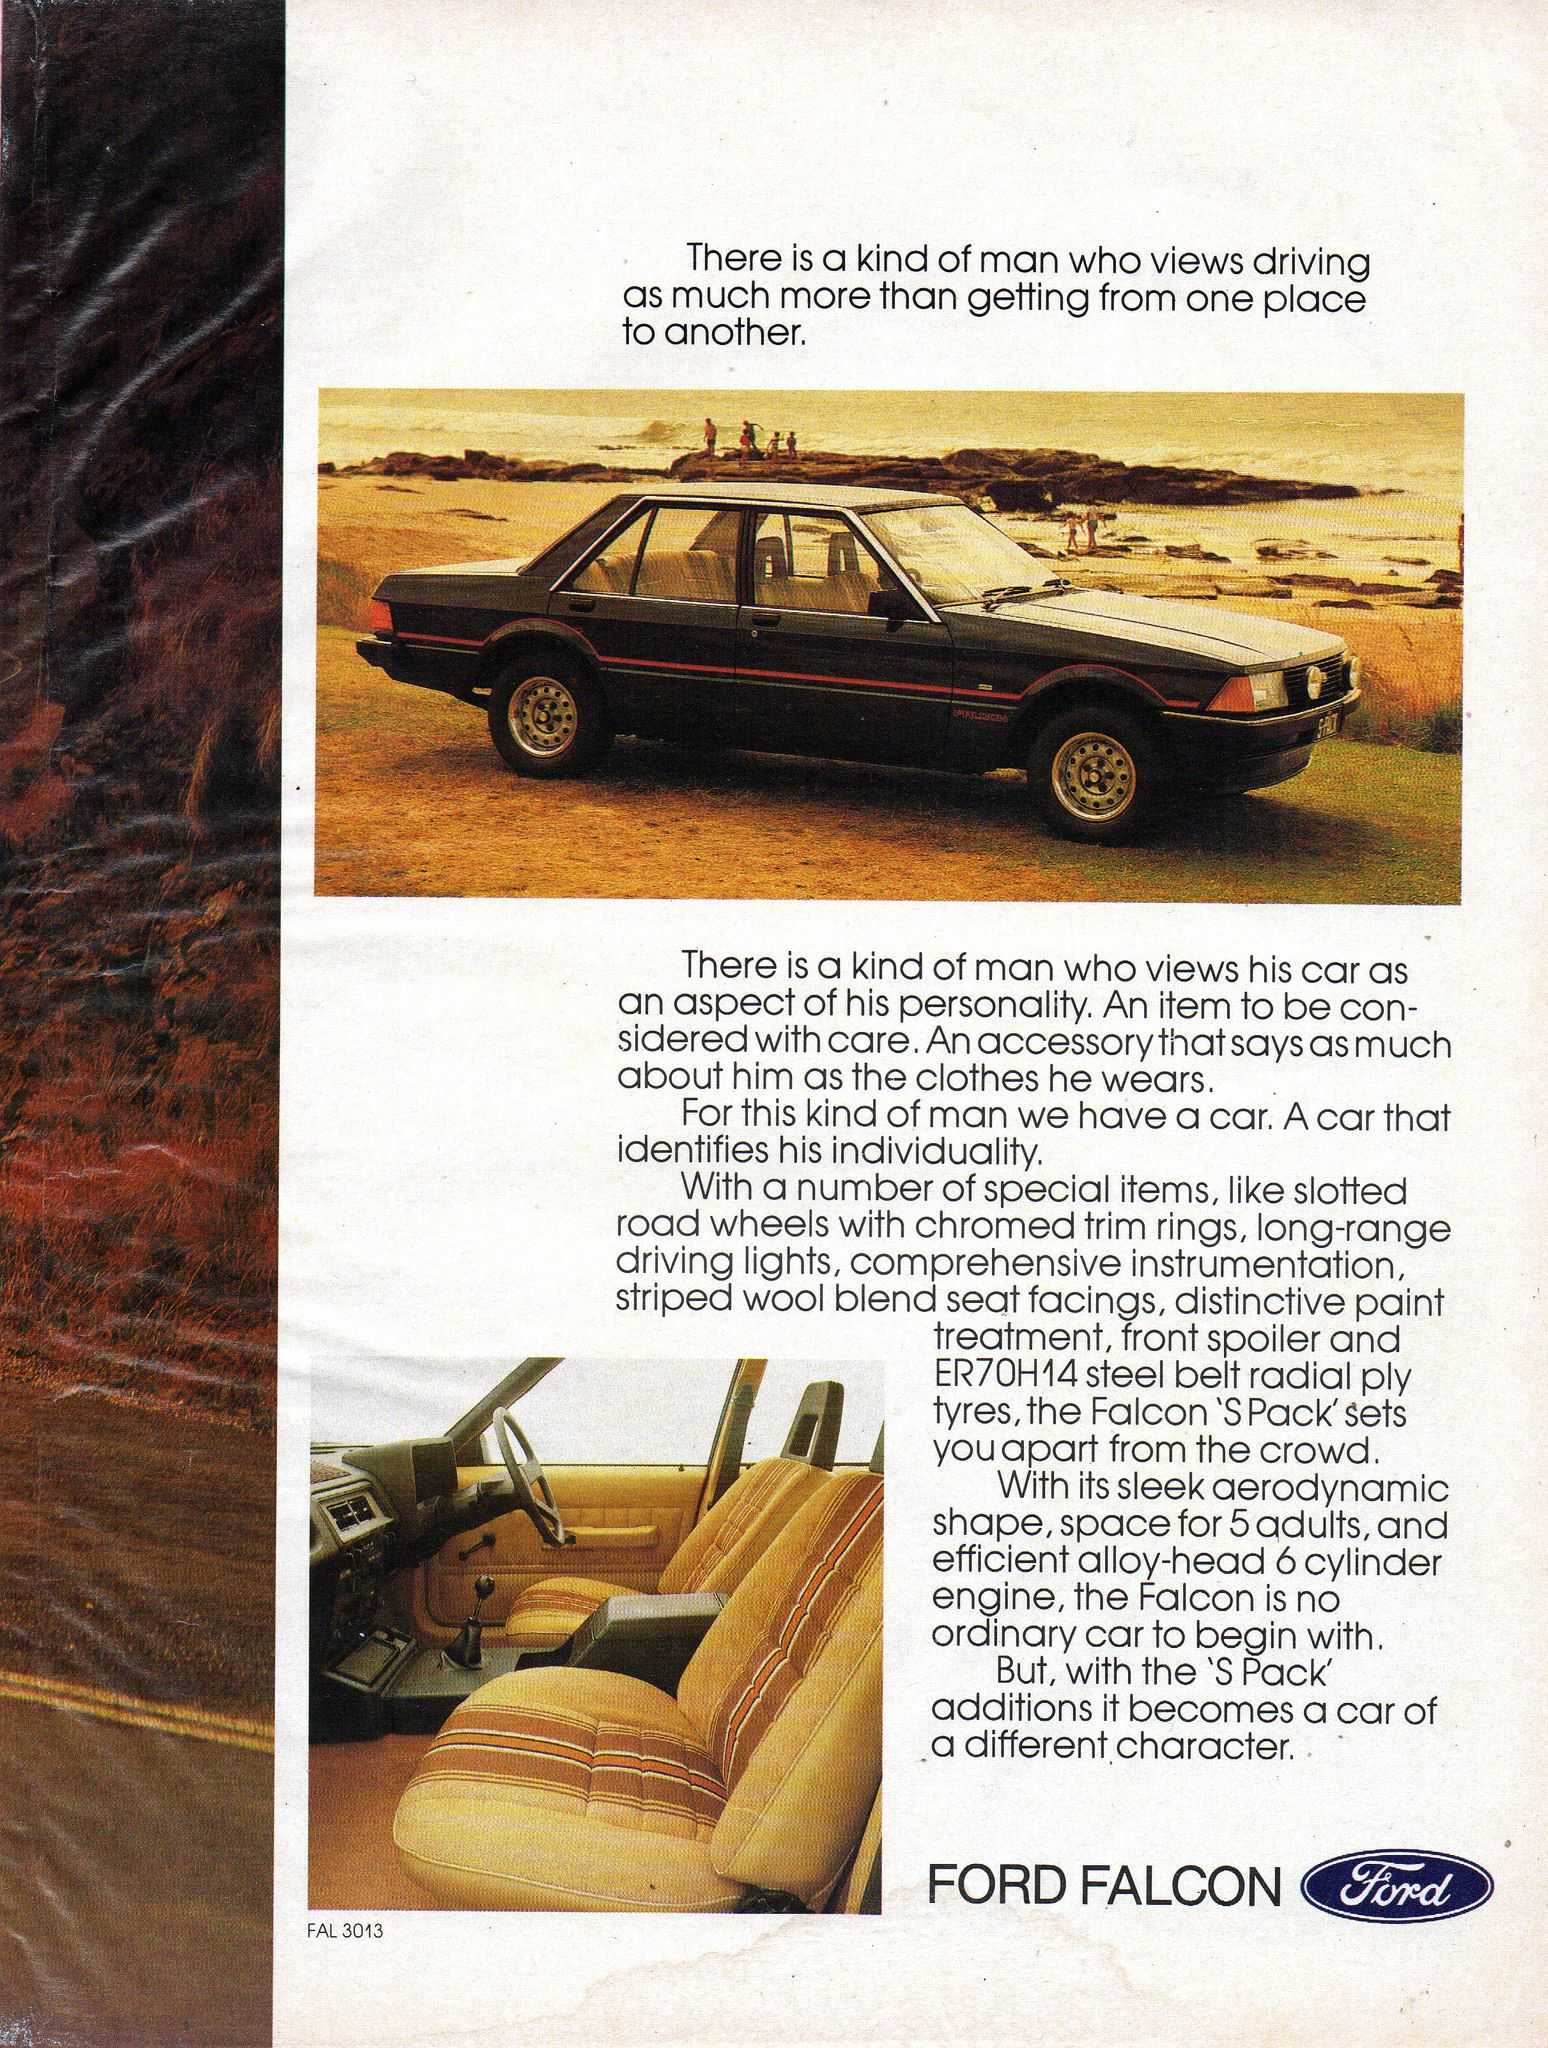 1981 Xd Ford Falcon S Pack 4 1 Litre Sedan Page 2 Aussie Original Magazine Advertisment Ford Falcon Australian Cars Ford Motor Company